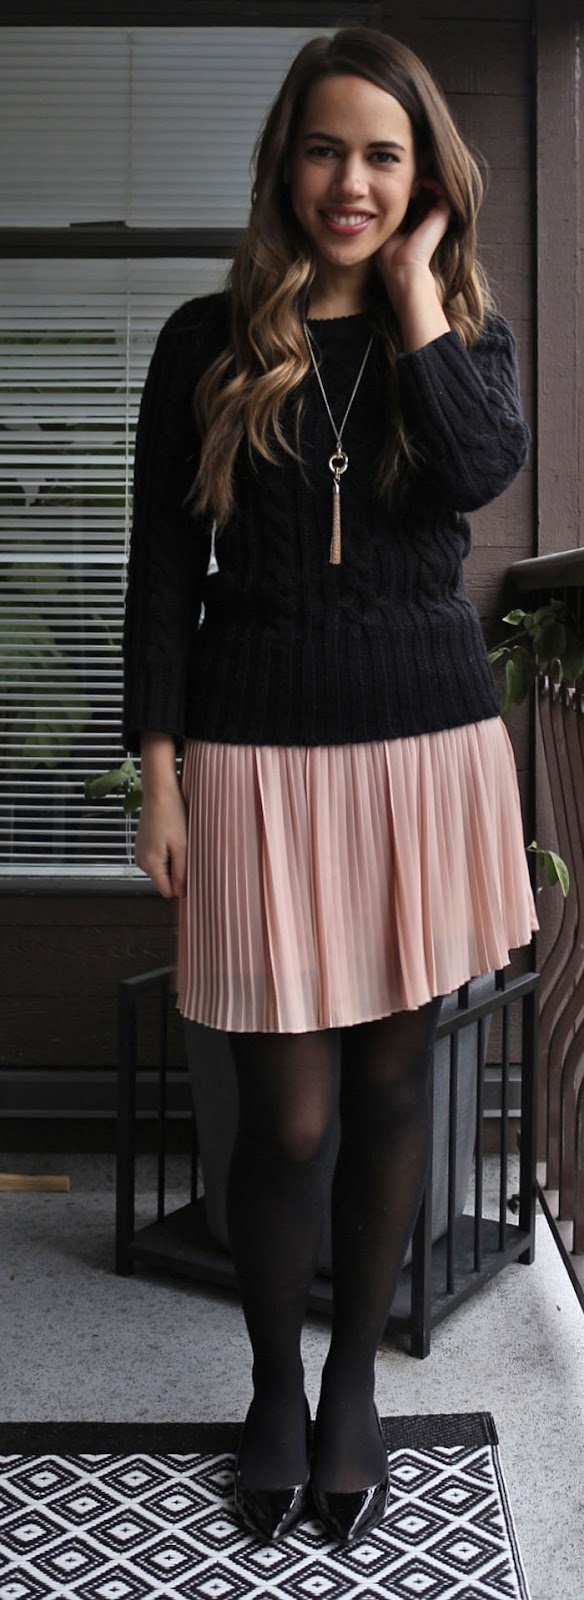 Jules in Flats - Forever 21 Pink Pleated Skirt, Joe Fresh Cable Knit Sweater